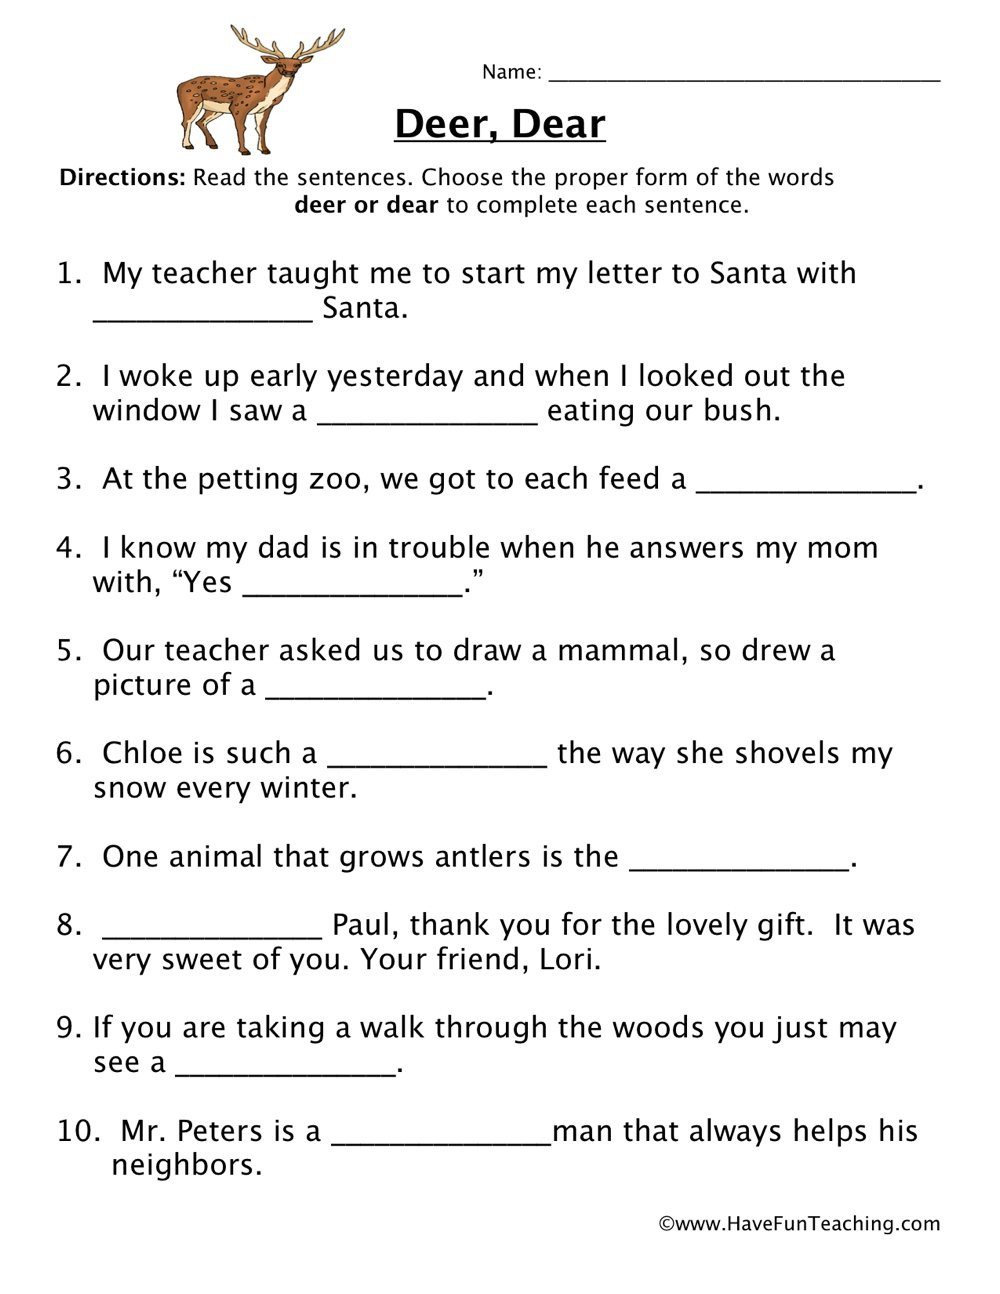 Homophones Worksheets for Grade 2 Deer Dear Homophones Worksheet